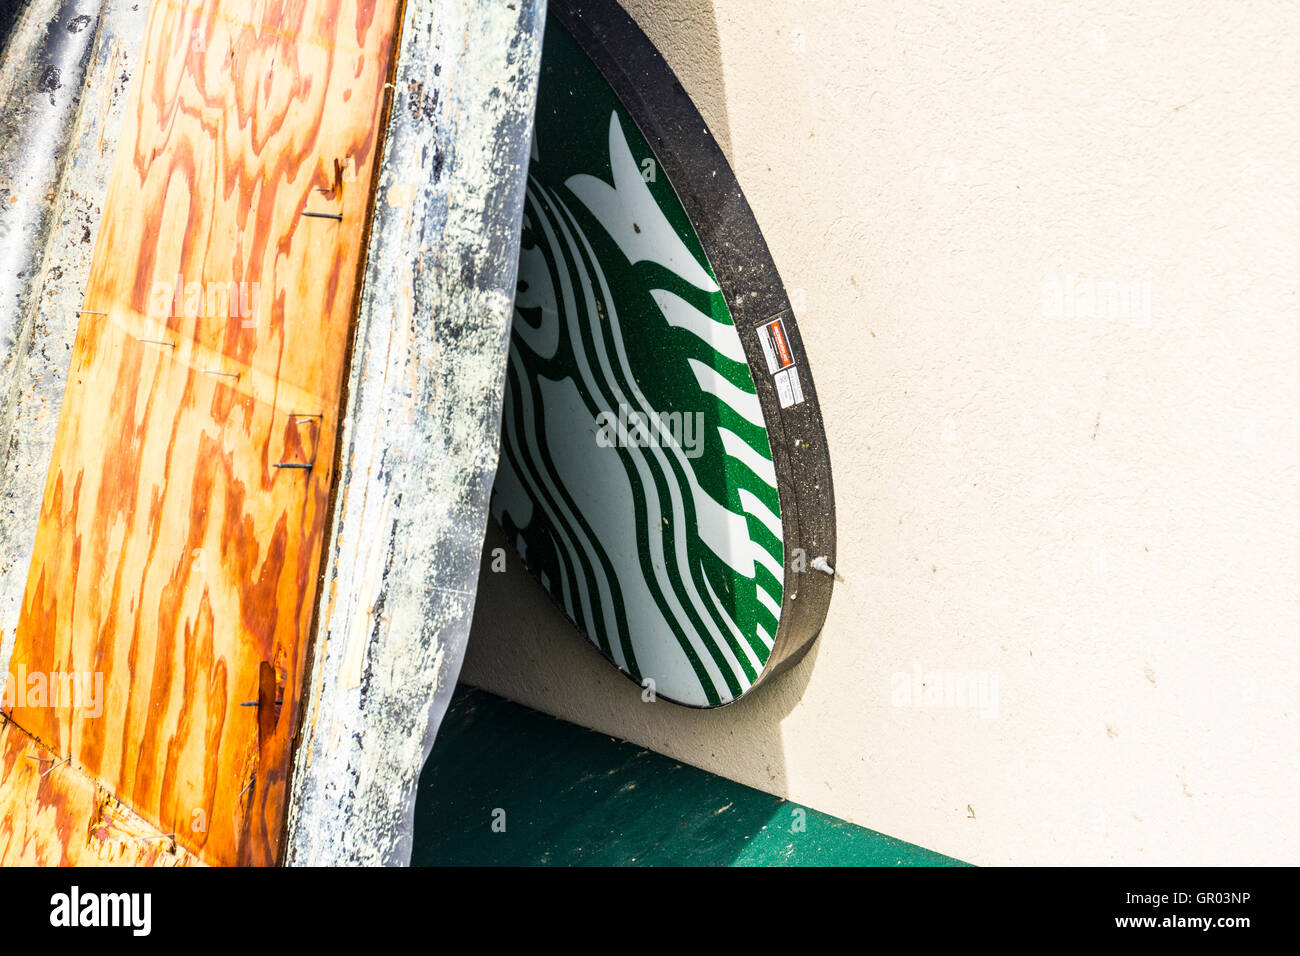 Kokomo - August 24, 2016: Several EF3 tornadoes touched down, one of which destroyed a local Starbucks 19 - Stock Image